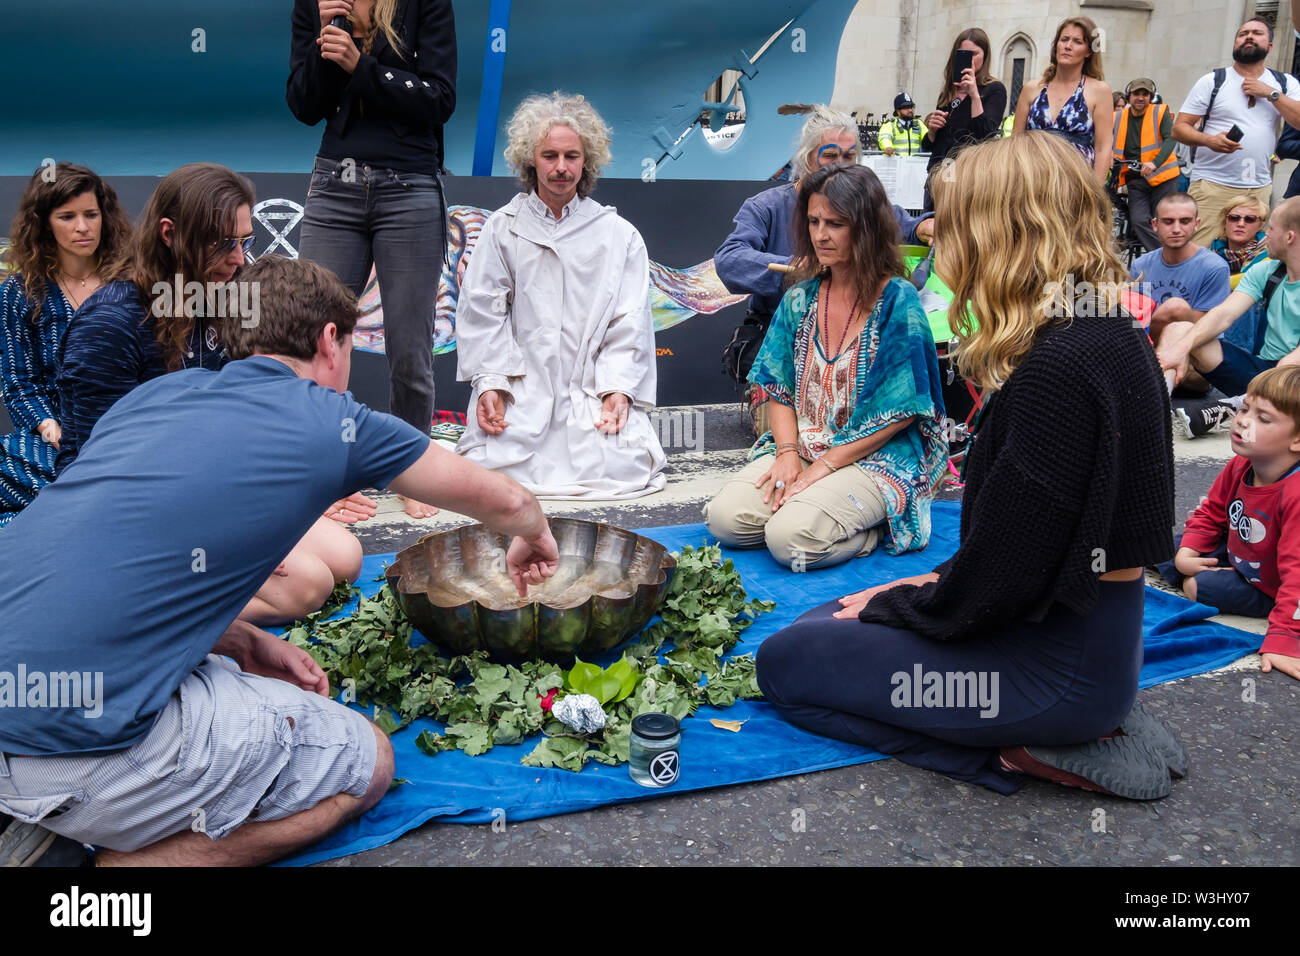 London, UK. 15th July, 2019. People stir the water in a ceremony against ecocide. Extinction Rebellion begins another series of protests in five major cities against the criminal inaction by the government on climate and ecological collapse. The protesters brought a yacht named after Polly Higgins who fought for years for an Ecocide Law to the Royal Courts of Justice and continued her fight blocking the Strand all day with performances, discussions, speeches, music and ceremonies in front of the yacht. Credit: Peter Marshall/Alamy Live News - Stock Image